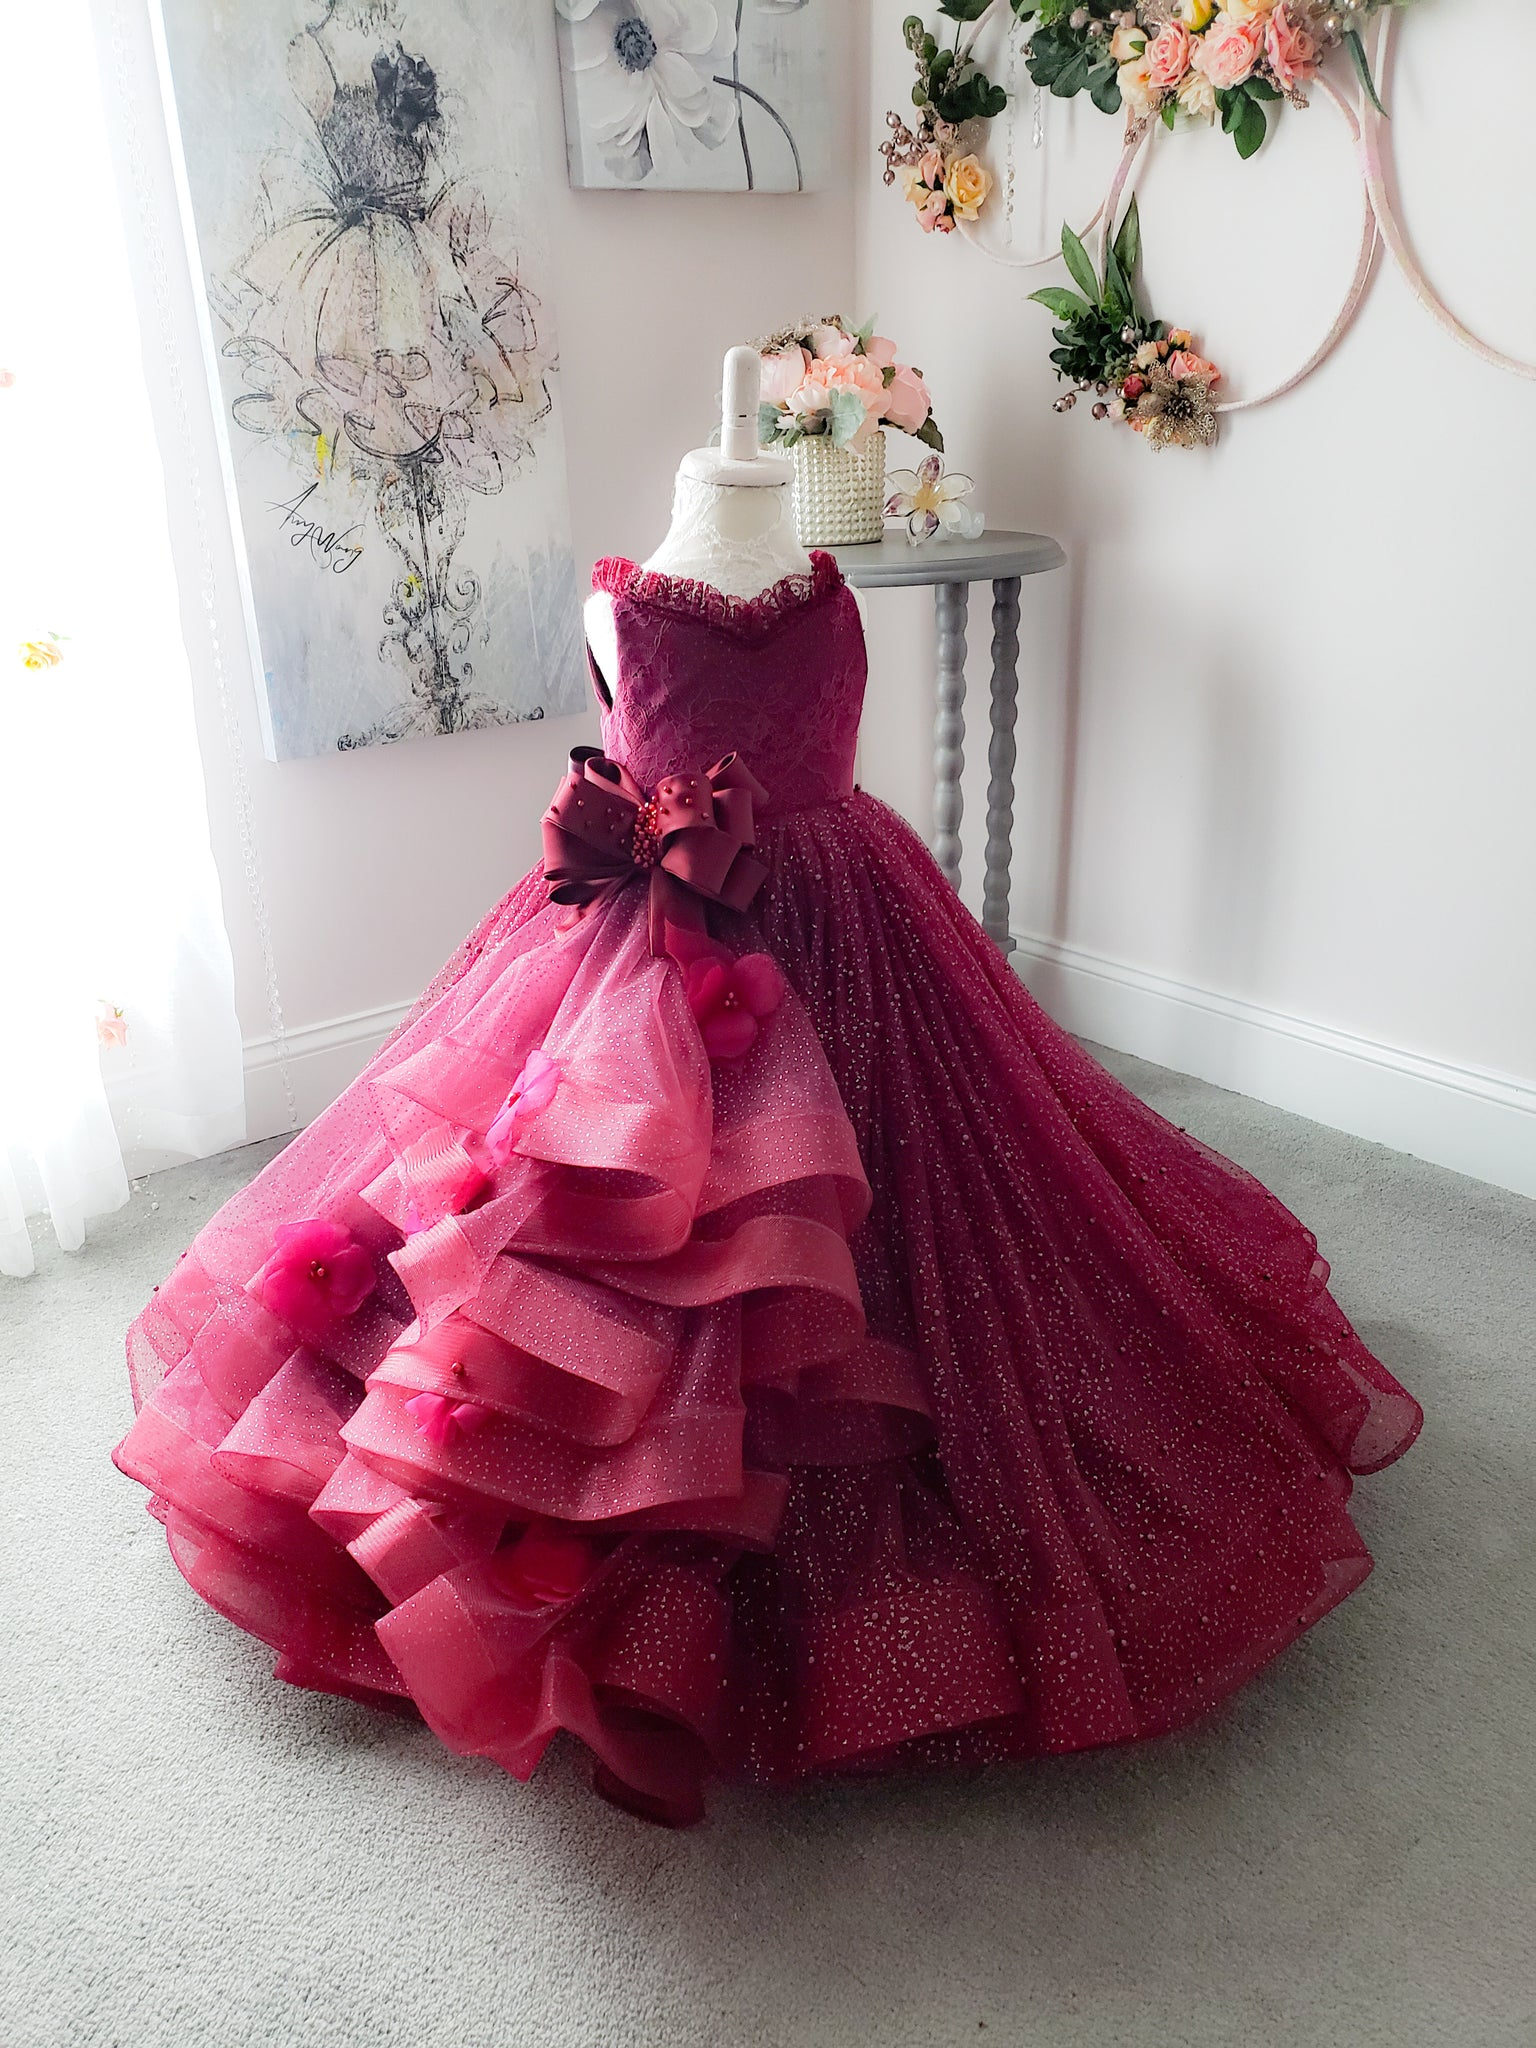 Cherry Burst Gown